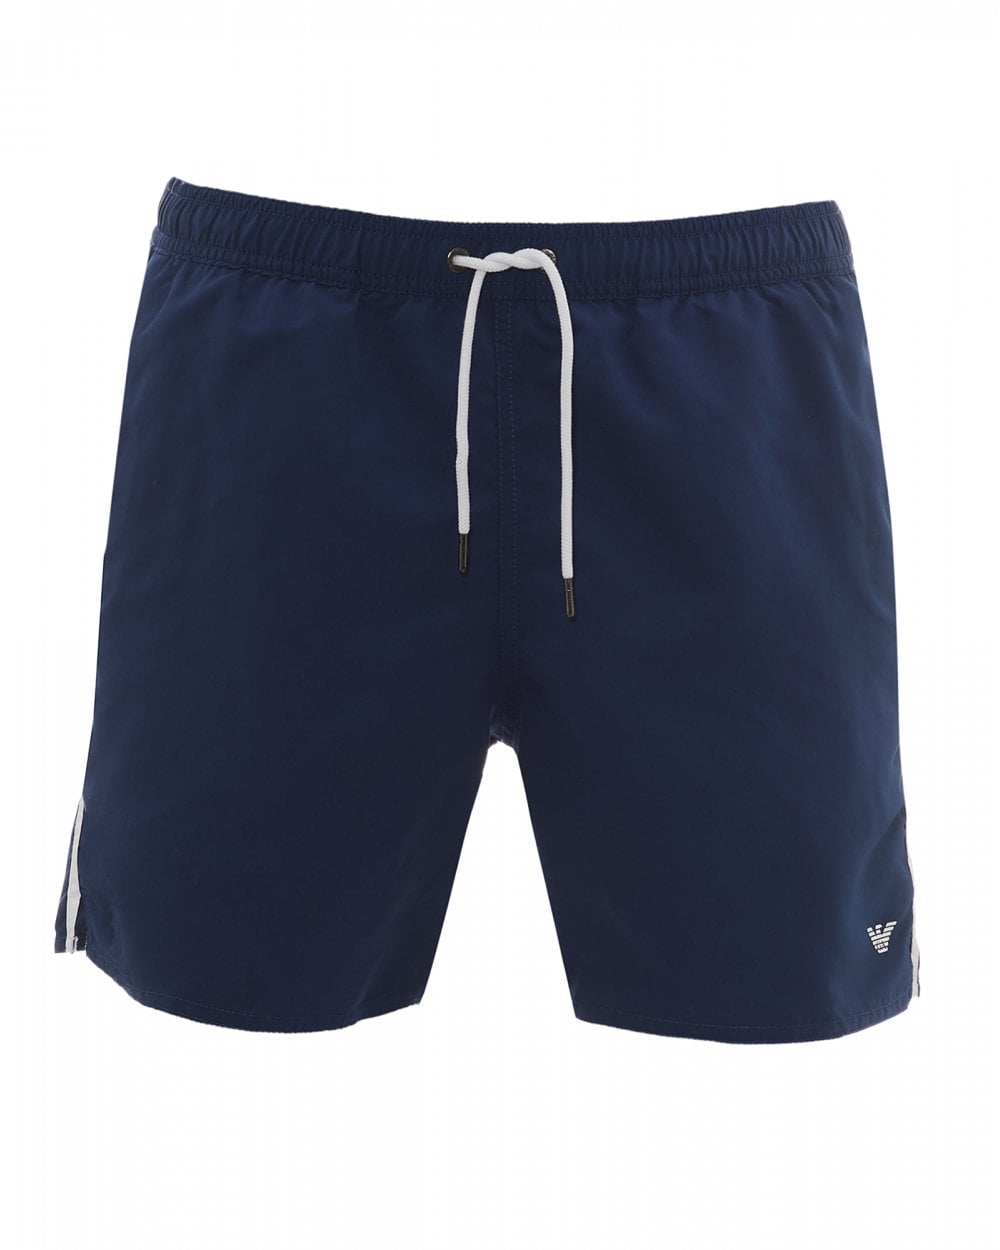 4a2dec4cc8 Emporio Armani Mens Eagle Swimshorts, Navy & White Swimming Trunks